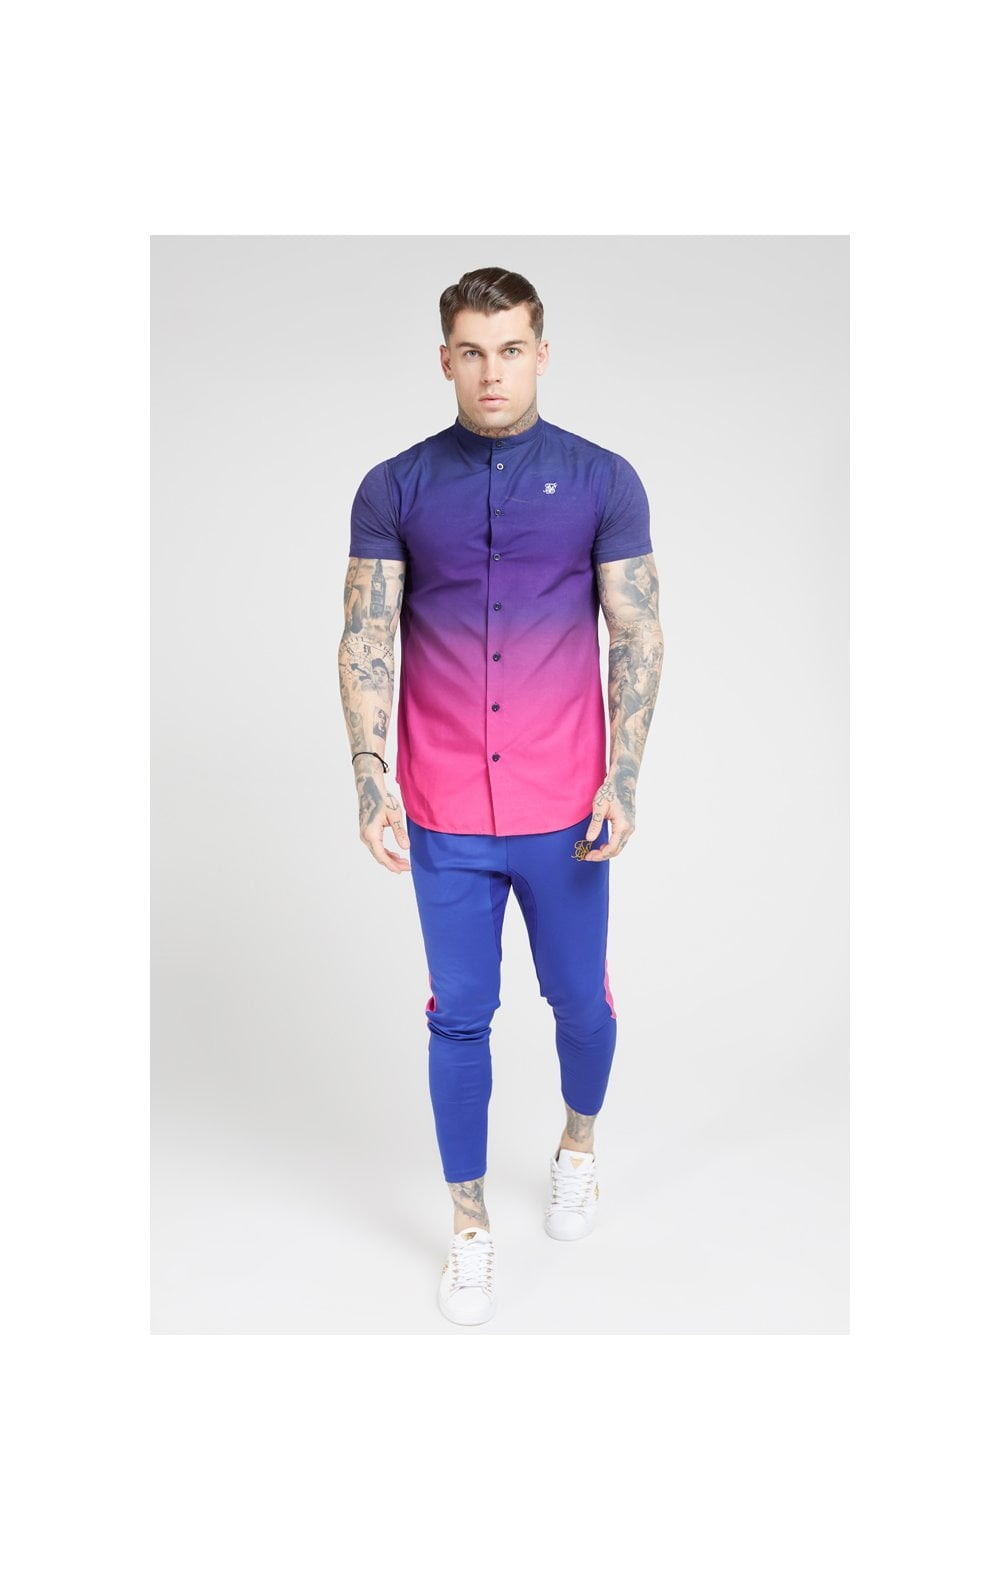 Load image into Gallery viewer, SikSilk S/S Fade Grandad Shirt – Navy & Neon Fade (4)